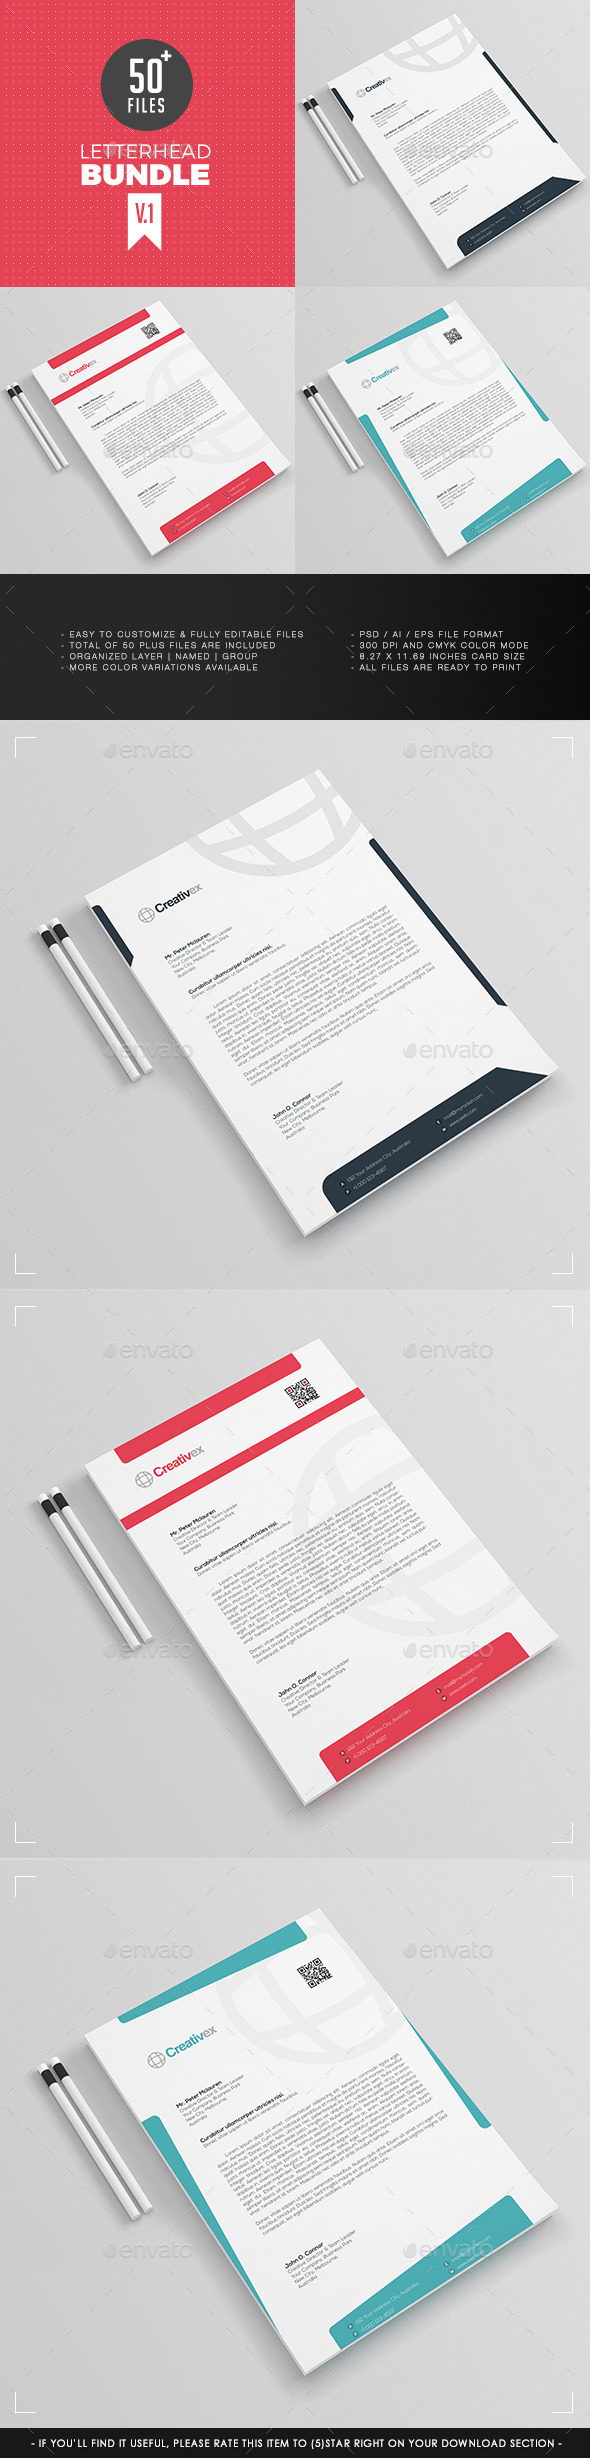 GraphicRiver 3 in 1 A4 Letterhead Bundle V.1 11859044